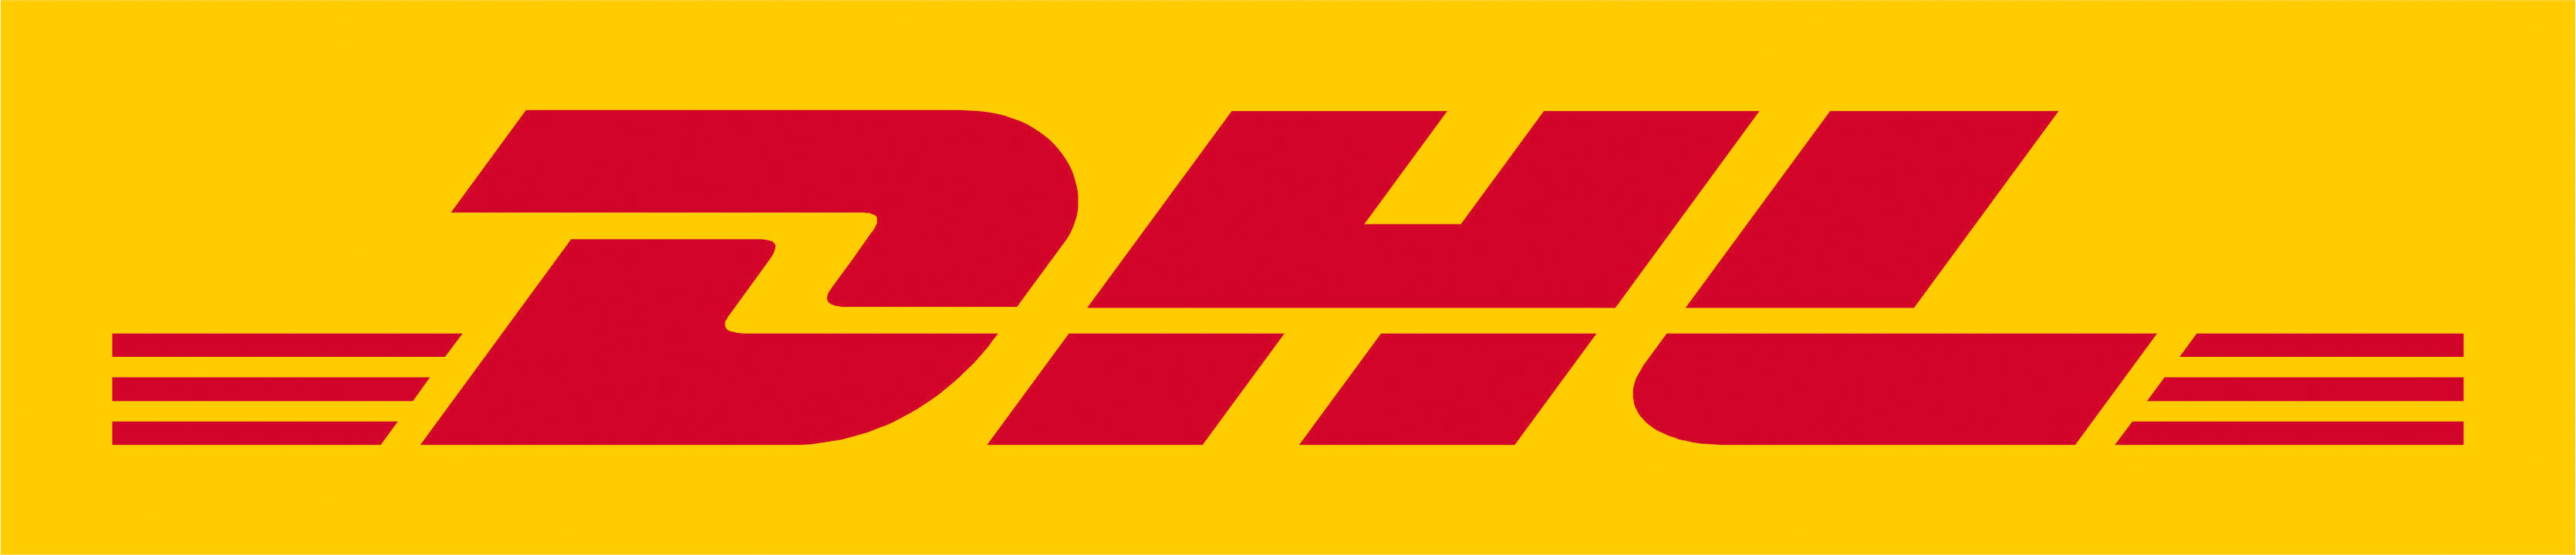 International Delivery Via DHL to Germany, France, Netherlands, Ireland & More